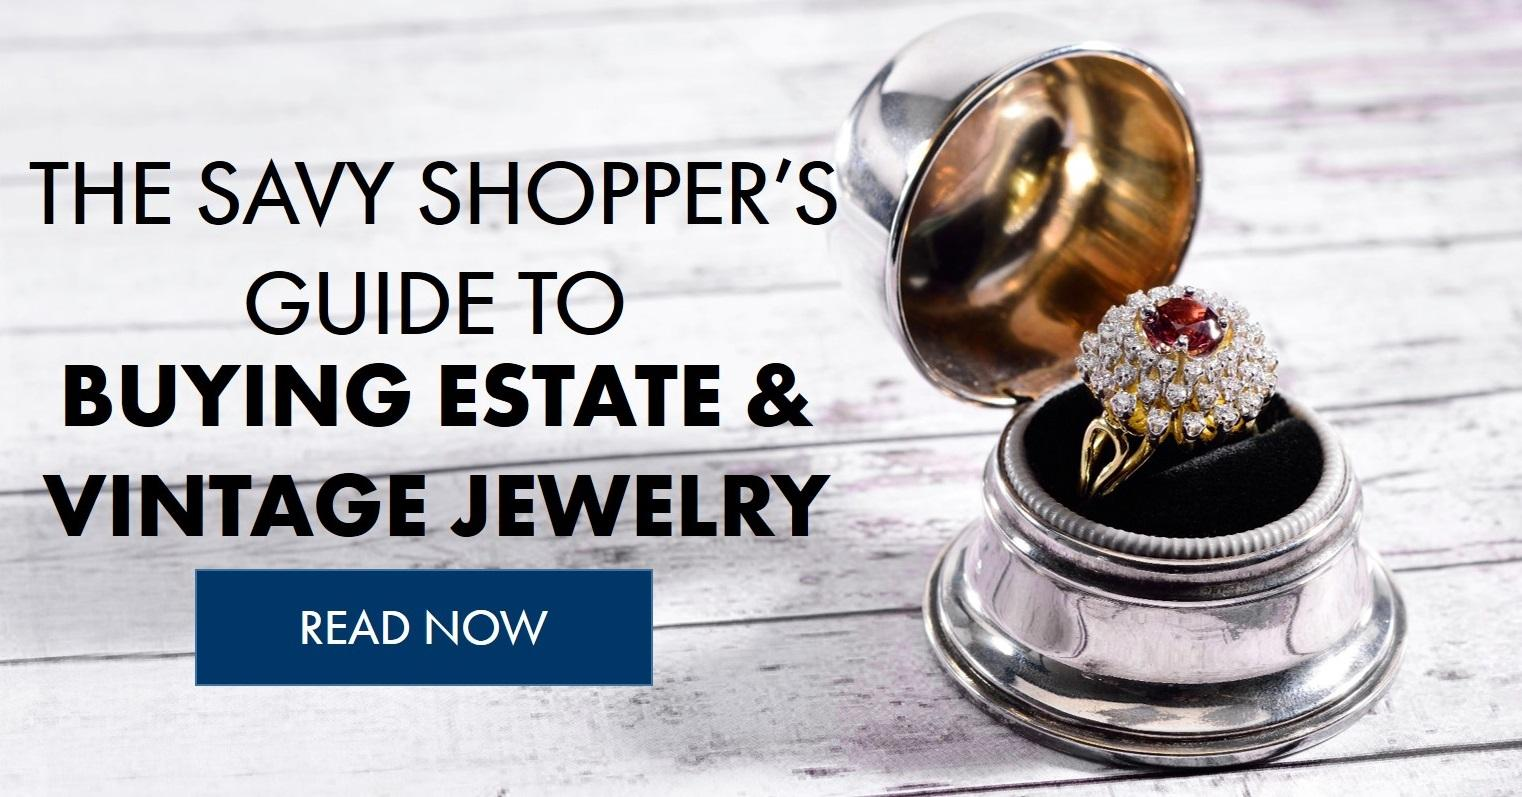 The Savvy Shopper's Guide To Buying Estate & Vintage Jewelry